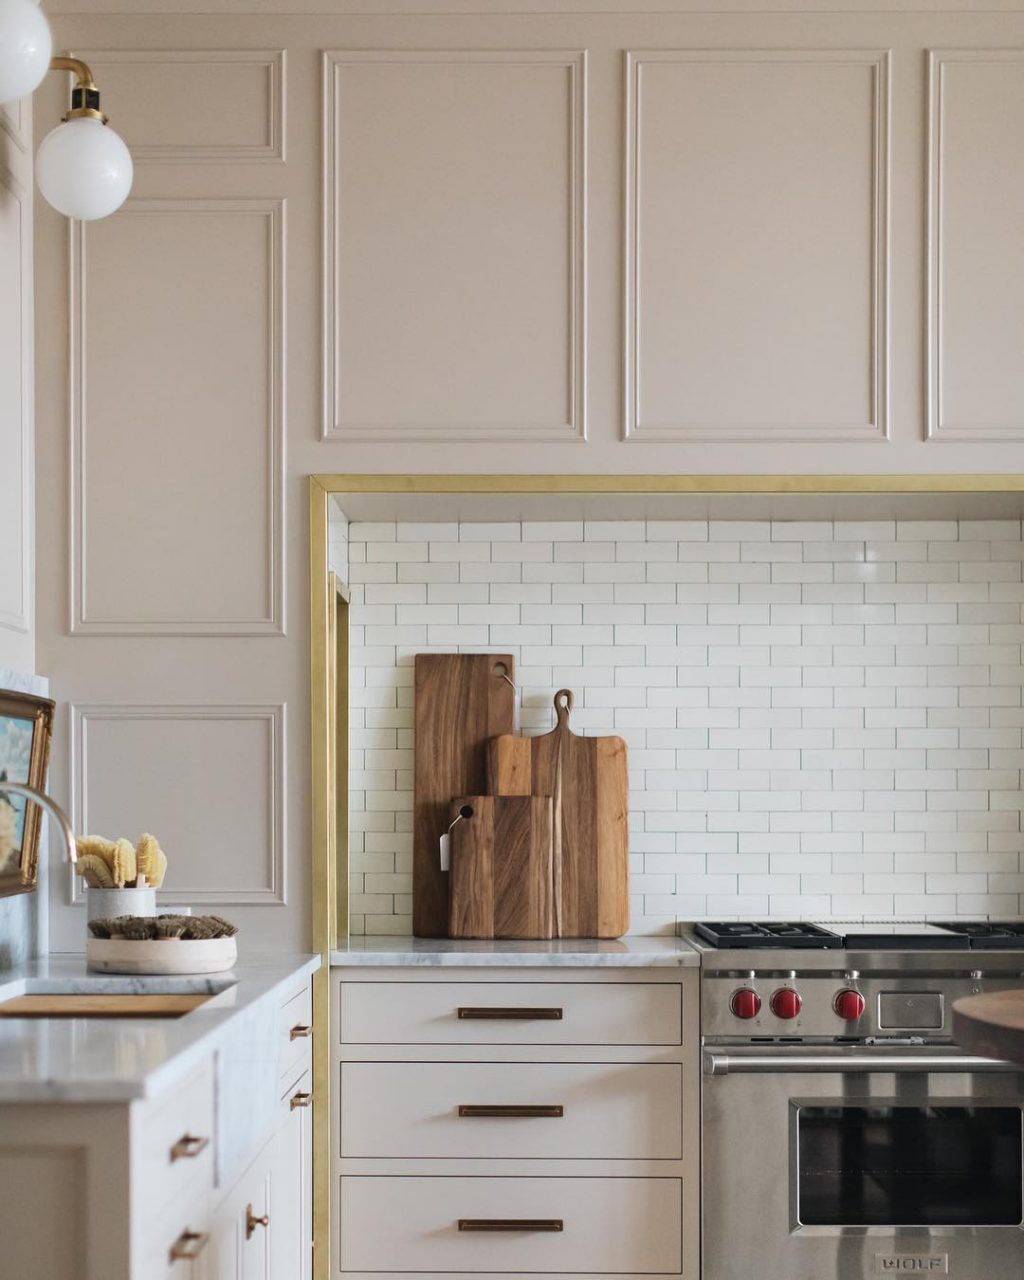 captivating beige gloss kitchen | Colors We're Considering for Our Phase 1 Kitchen Cabinets ...